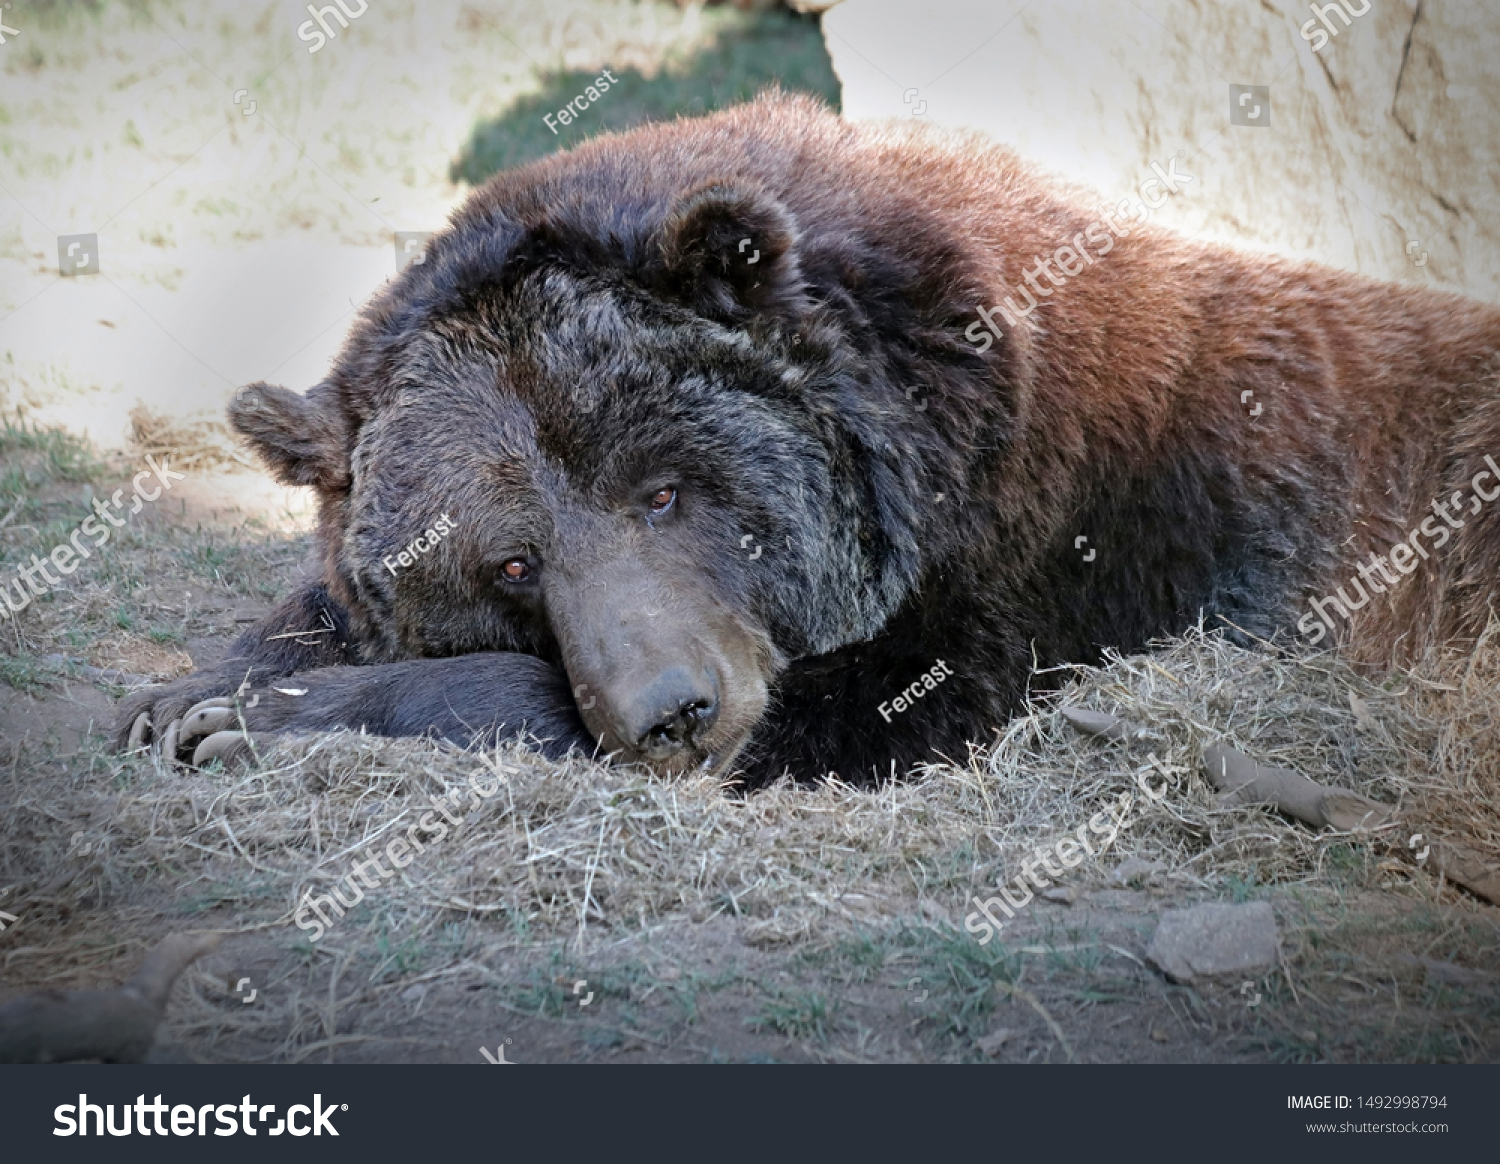 Depressed looking bear inside a cage in a zoo rests on the ground. This animal was rescued from another zoo and its confined in a small area. Brown bear (Ursus arctos pyrenaicus) with sad looking eyes